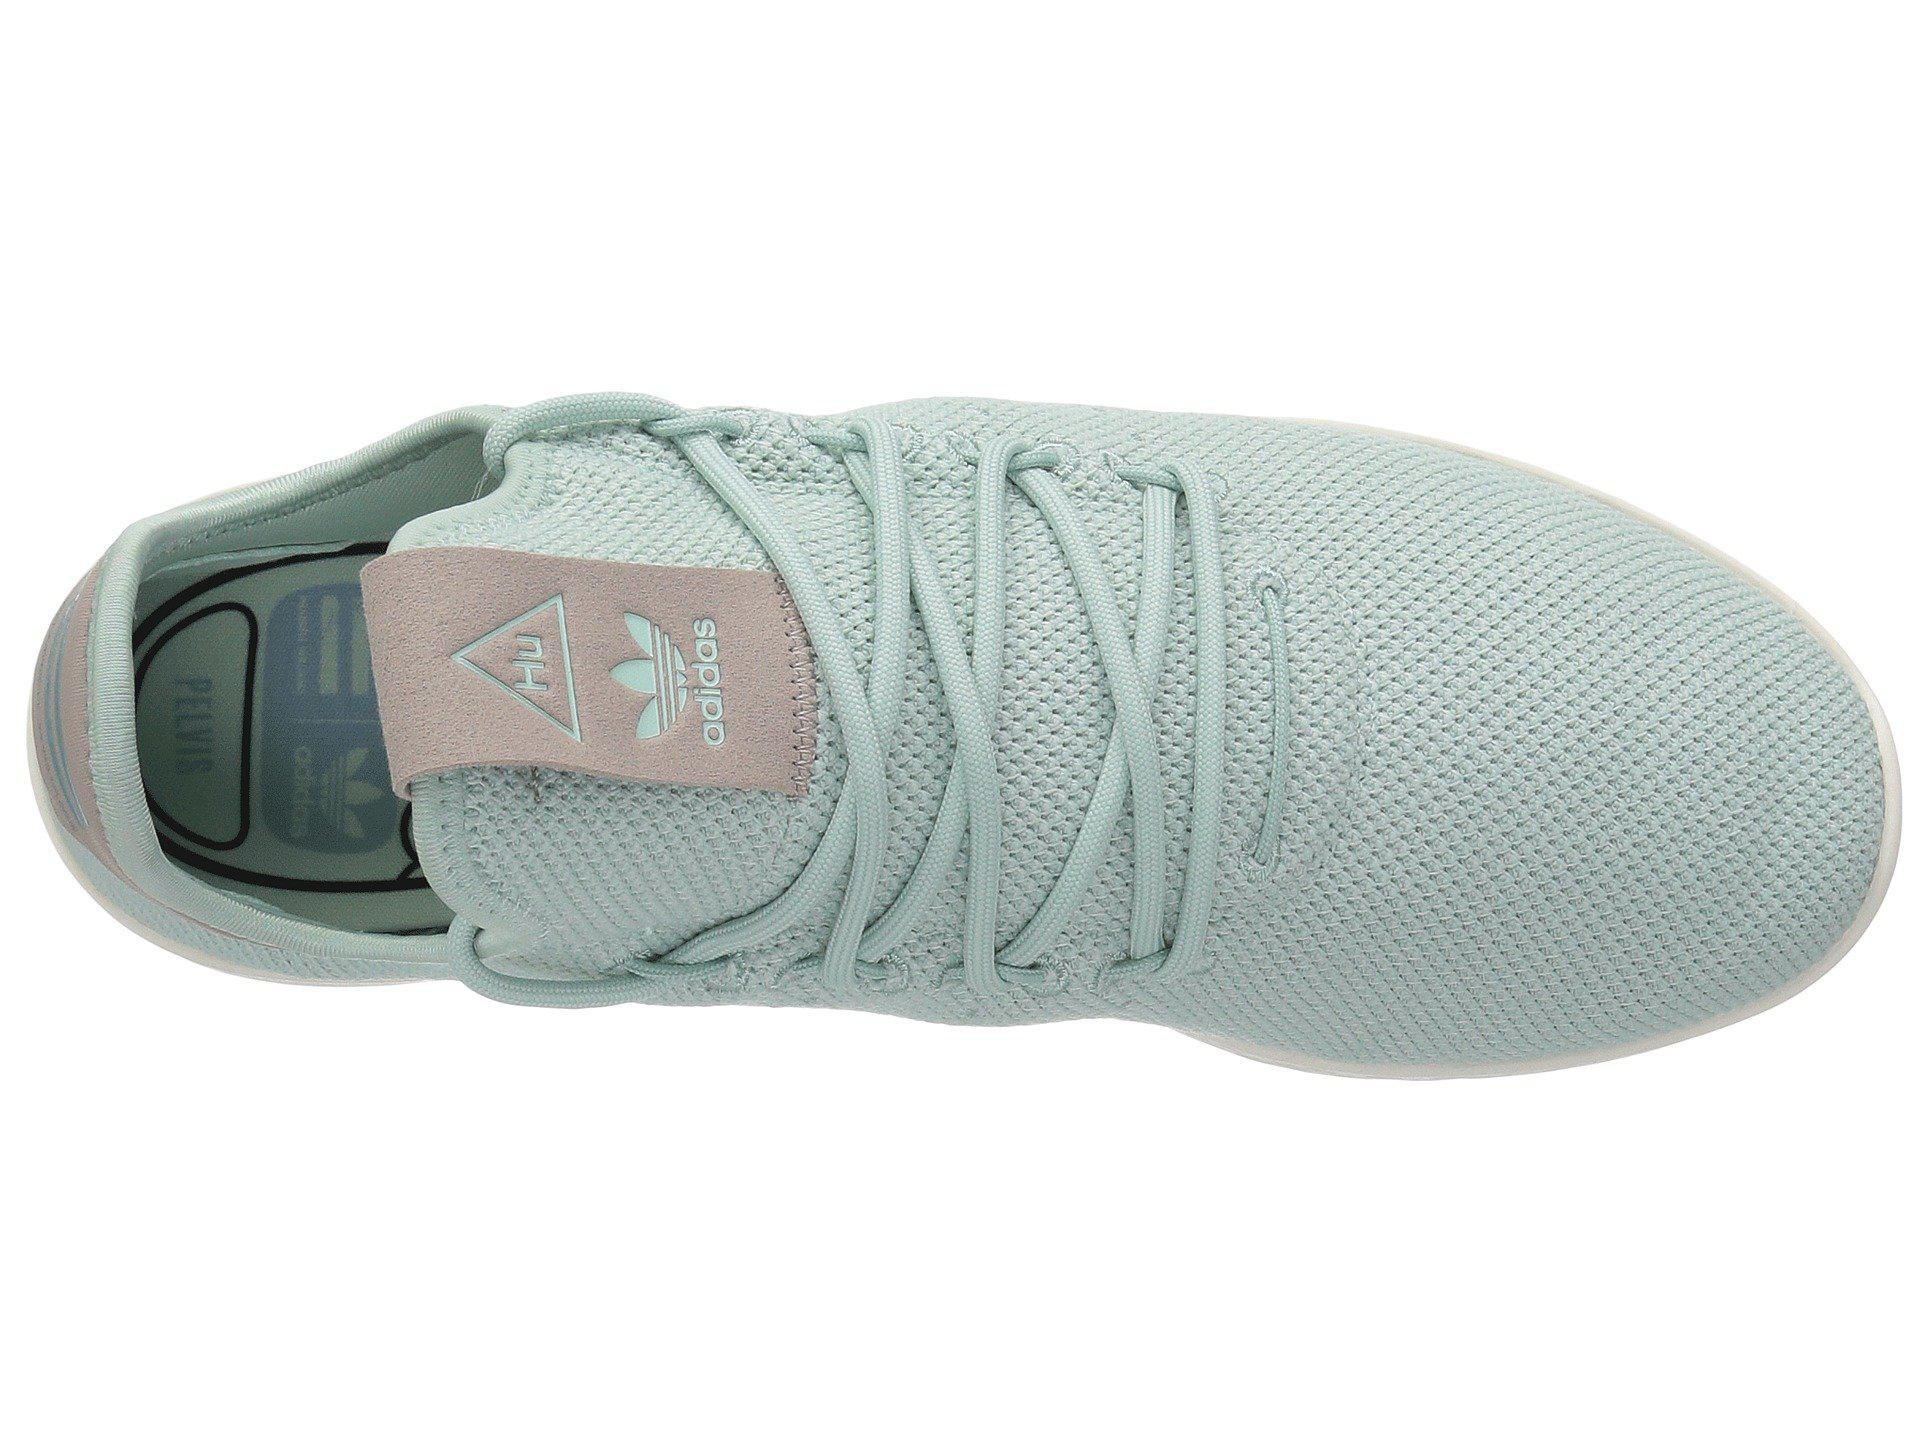 new arrival e49b2 5cdab ... the latest 56d07 48cd5 Lyst - Adidas Originals Pharrell Williams Tennis  Human Race  sneakers for cheap 89b87 e4c11 Zapatillas Mujer adidas x ...